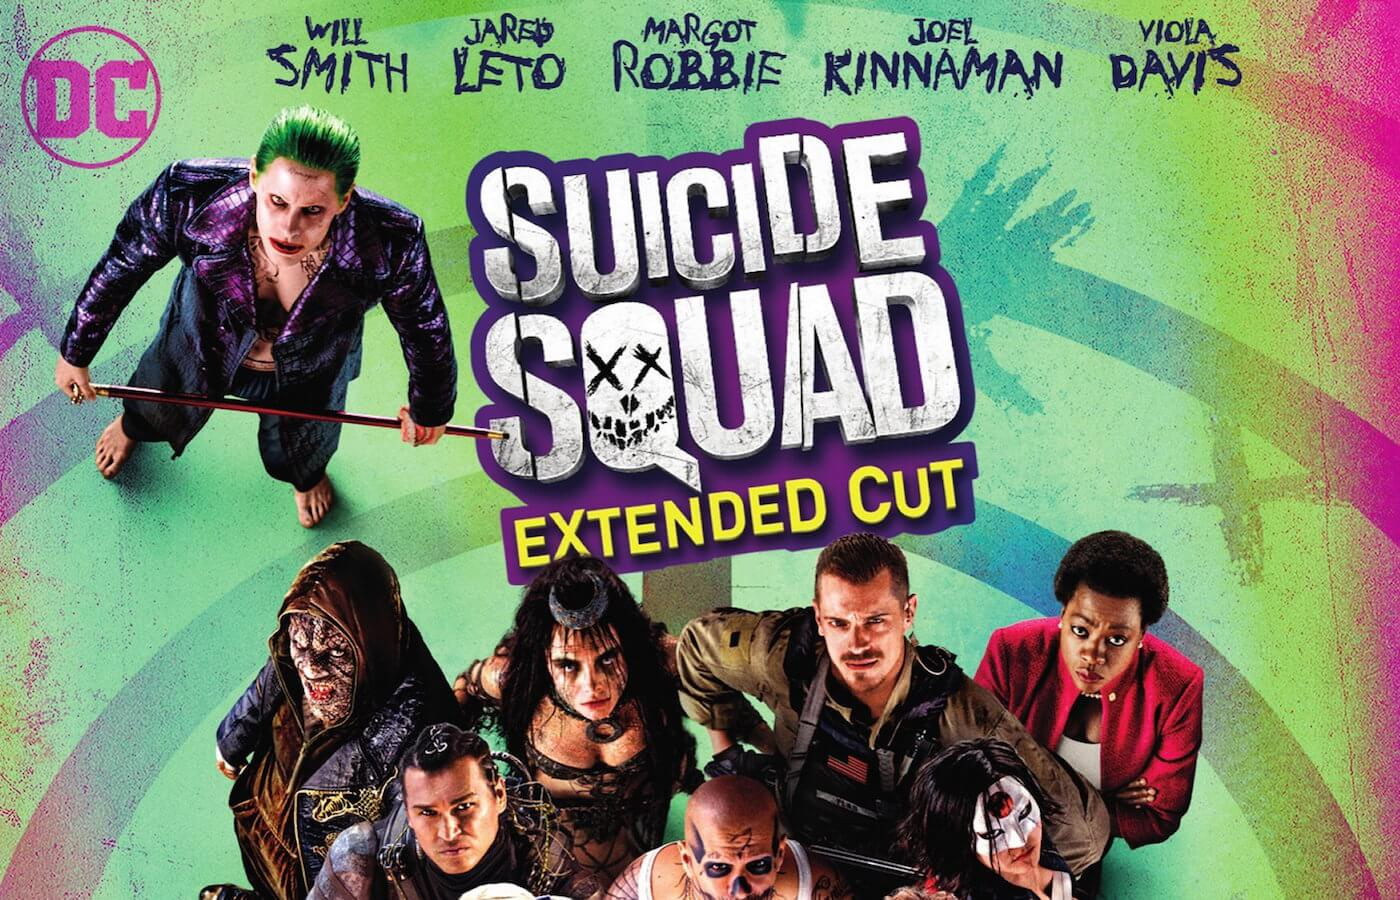 Suicide squad blu ray cover